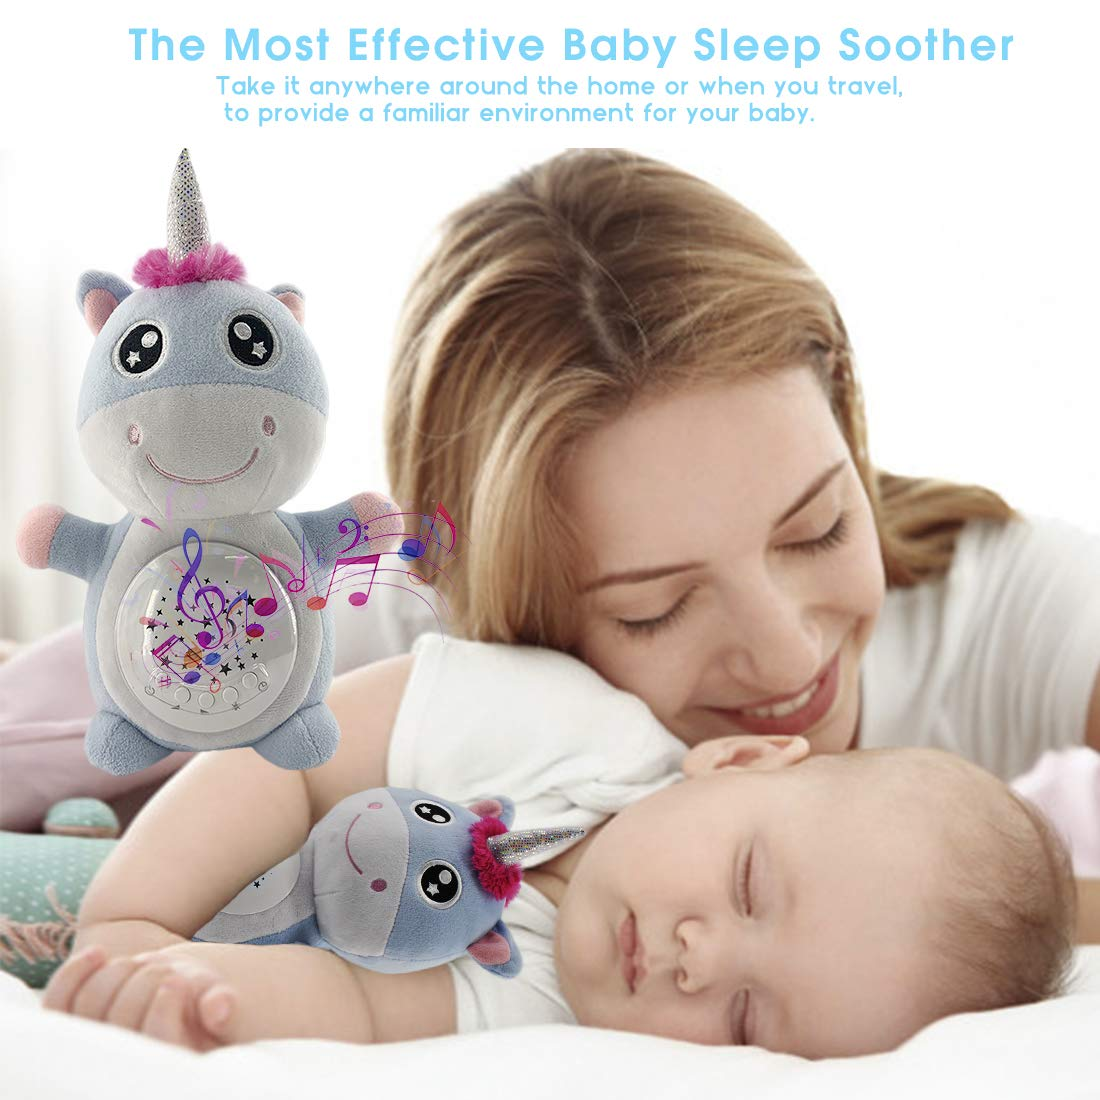 Kids Toddlers Blue Nursery Night Light Projector Portable Soother Crib /& Stroller Attachable Sleep Aid for Babies Unicorns Baby White Noise Machine